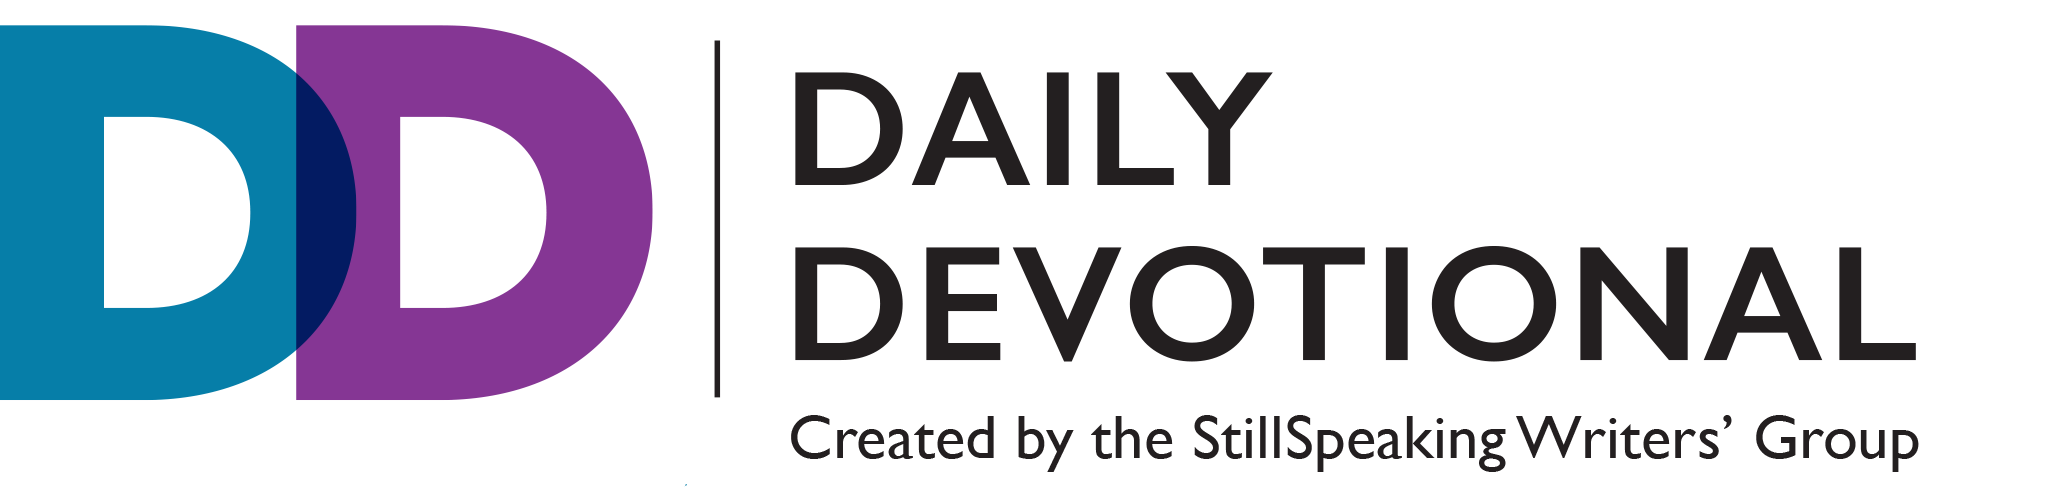 image regarding Printable Daily Devotions for Youth called Day-to-day Devotional - United Church of Christ